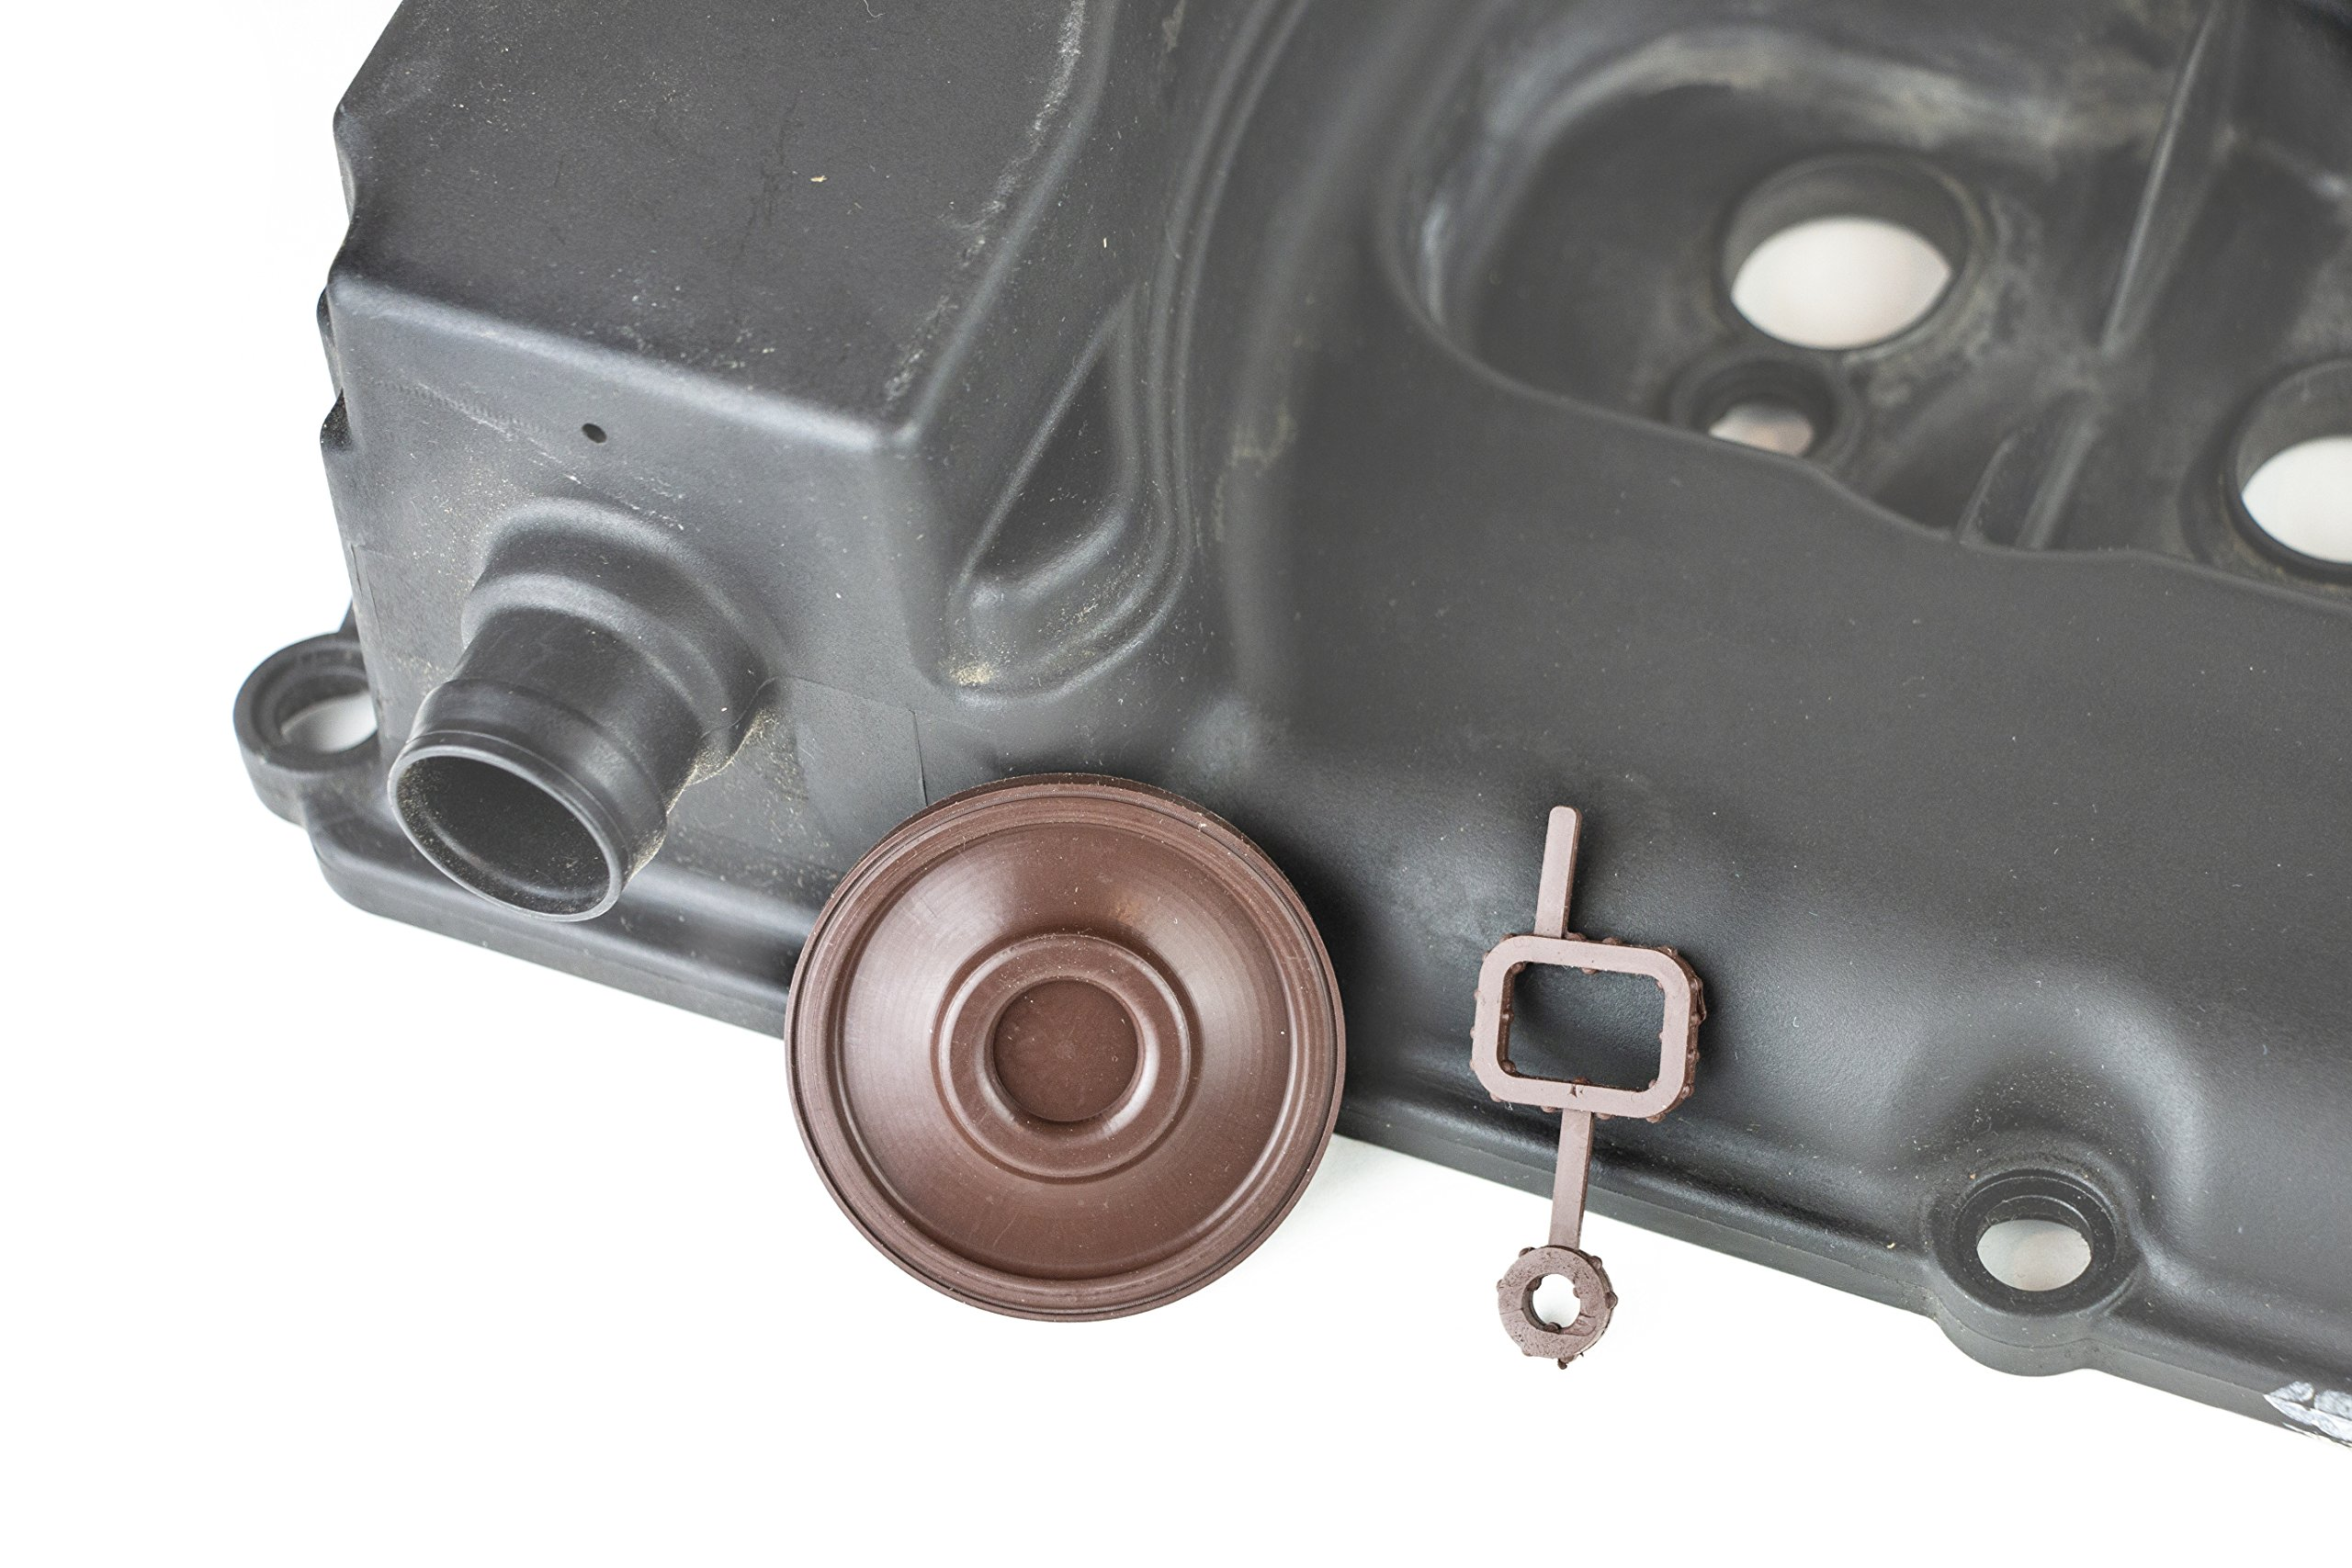 RKX 3.6 & 3.2 Engine Valve Cover PCV Valve Diaphragm membrane and PCV assembly Gasket compatible with VW Audi